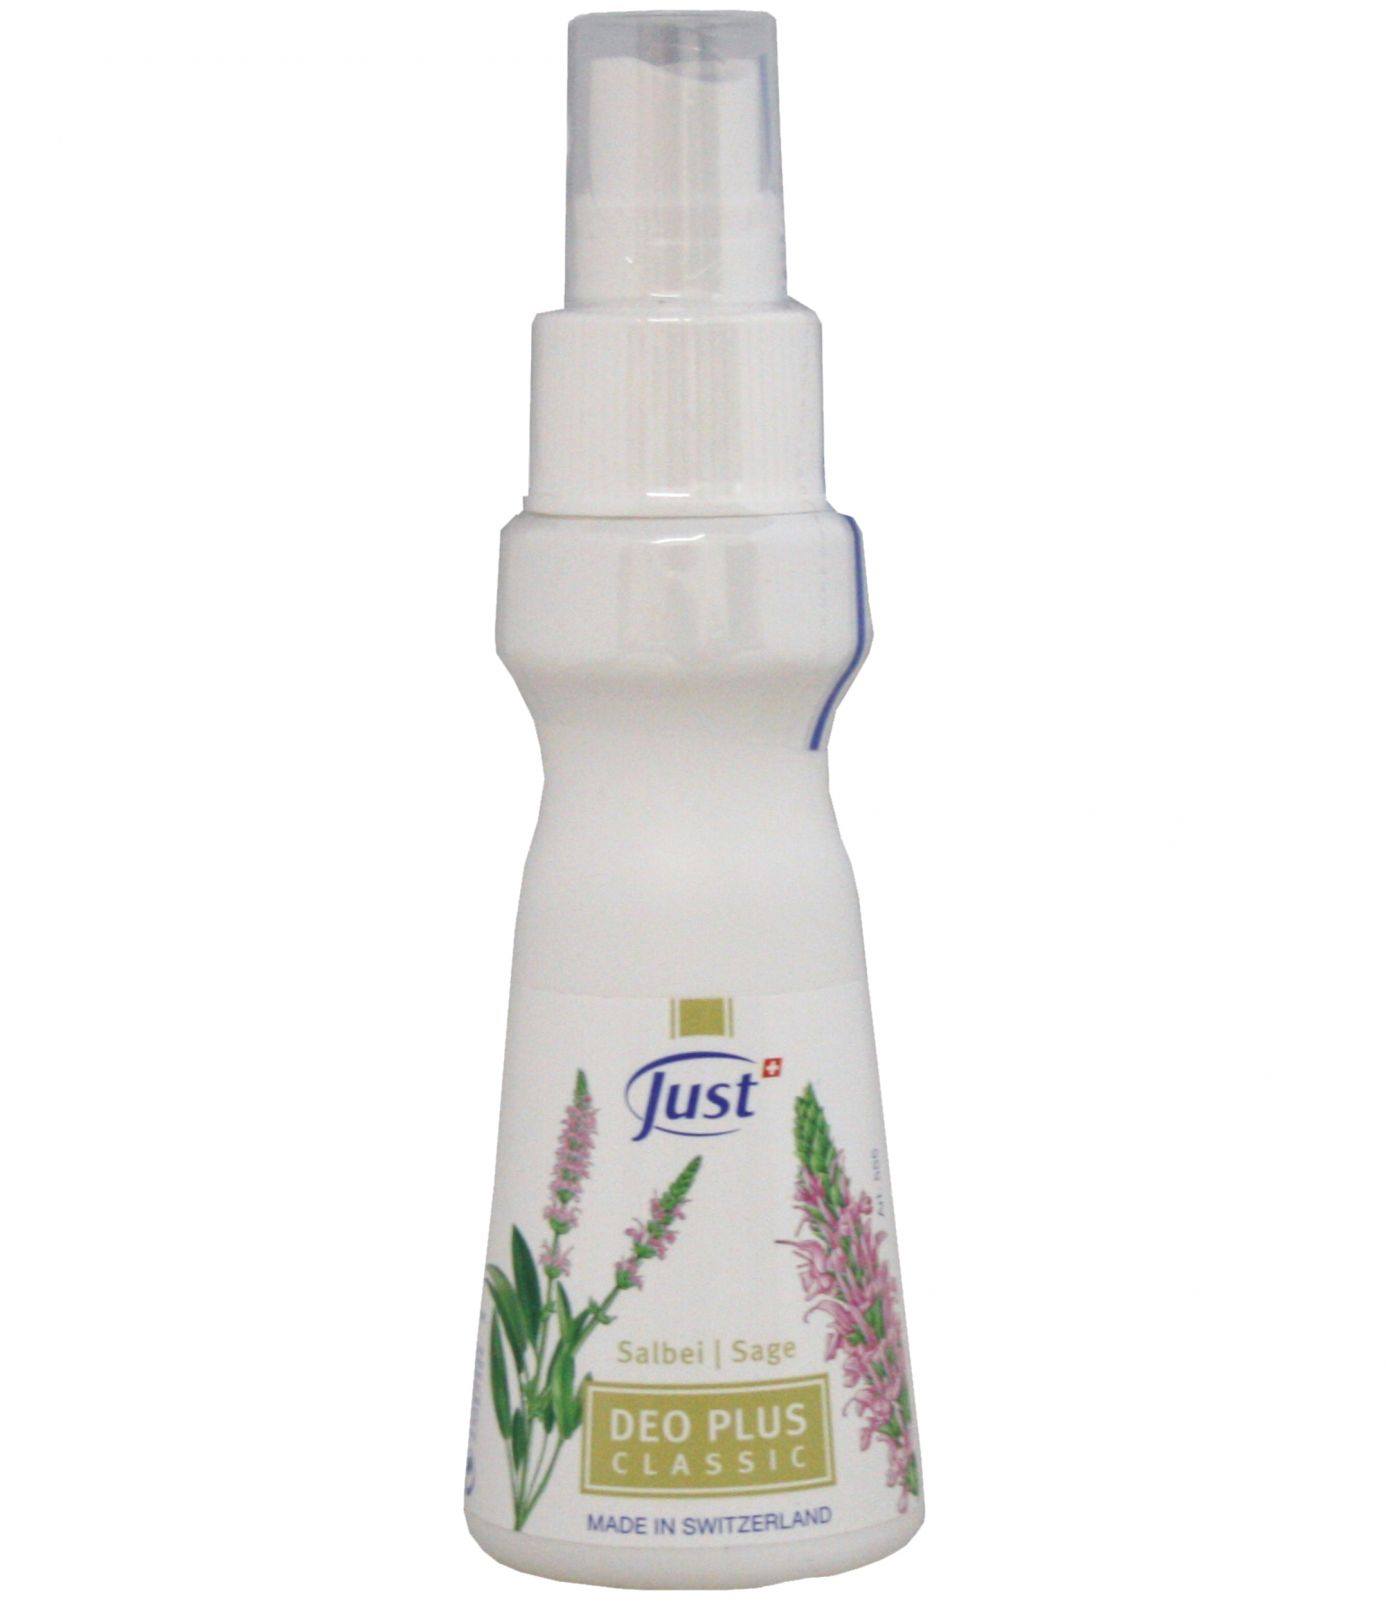 JUST Deo Plus Classic 75 ml